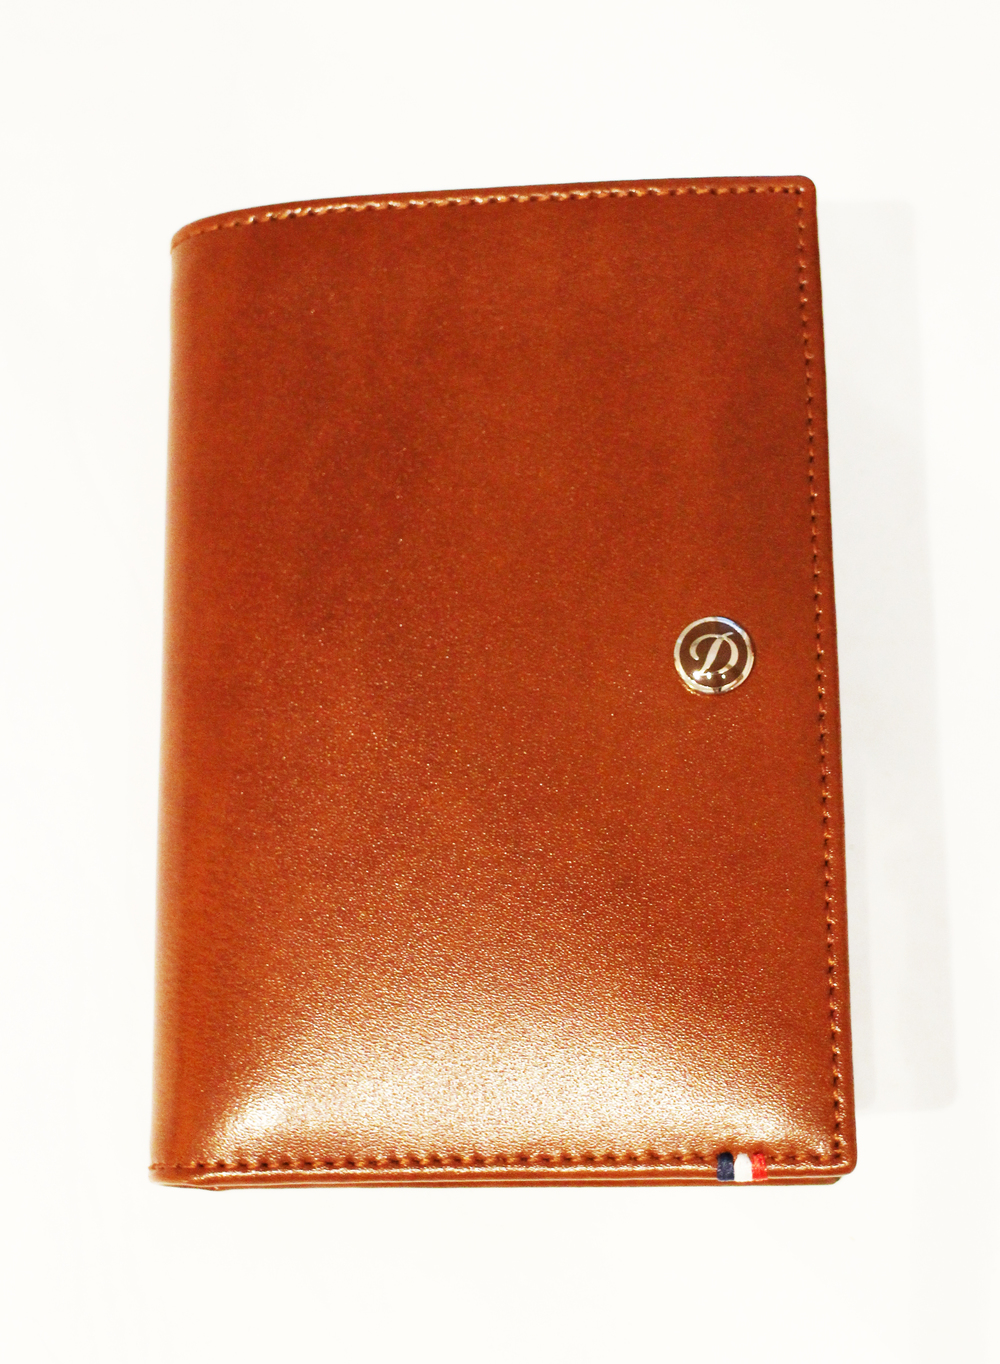 ST Dupont Line D Passport Cover